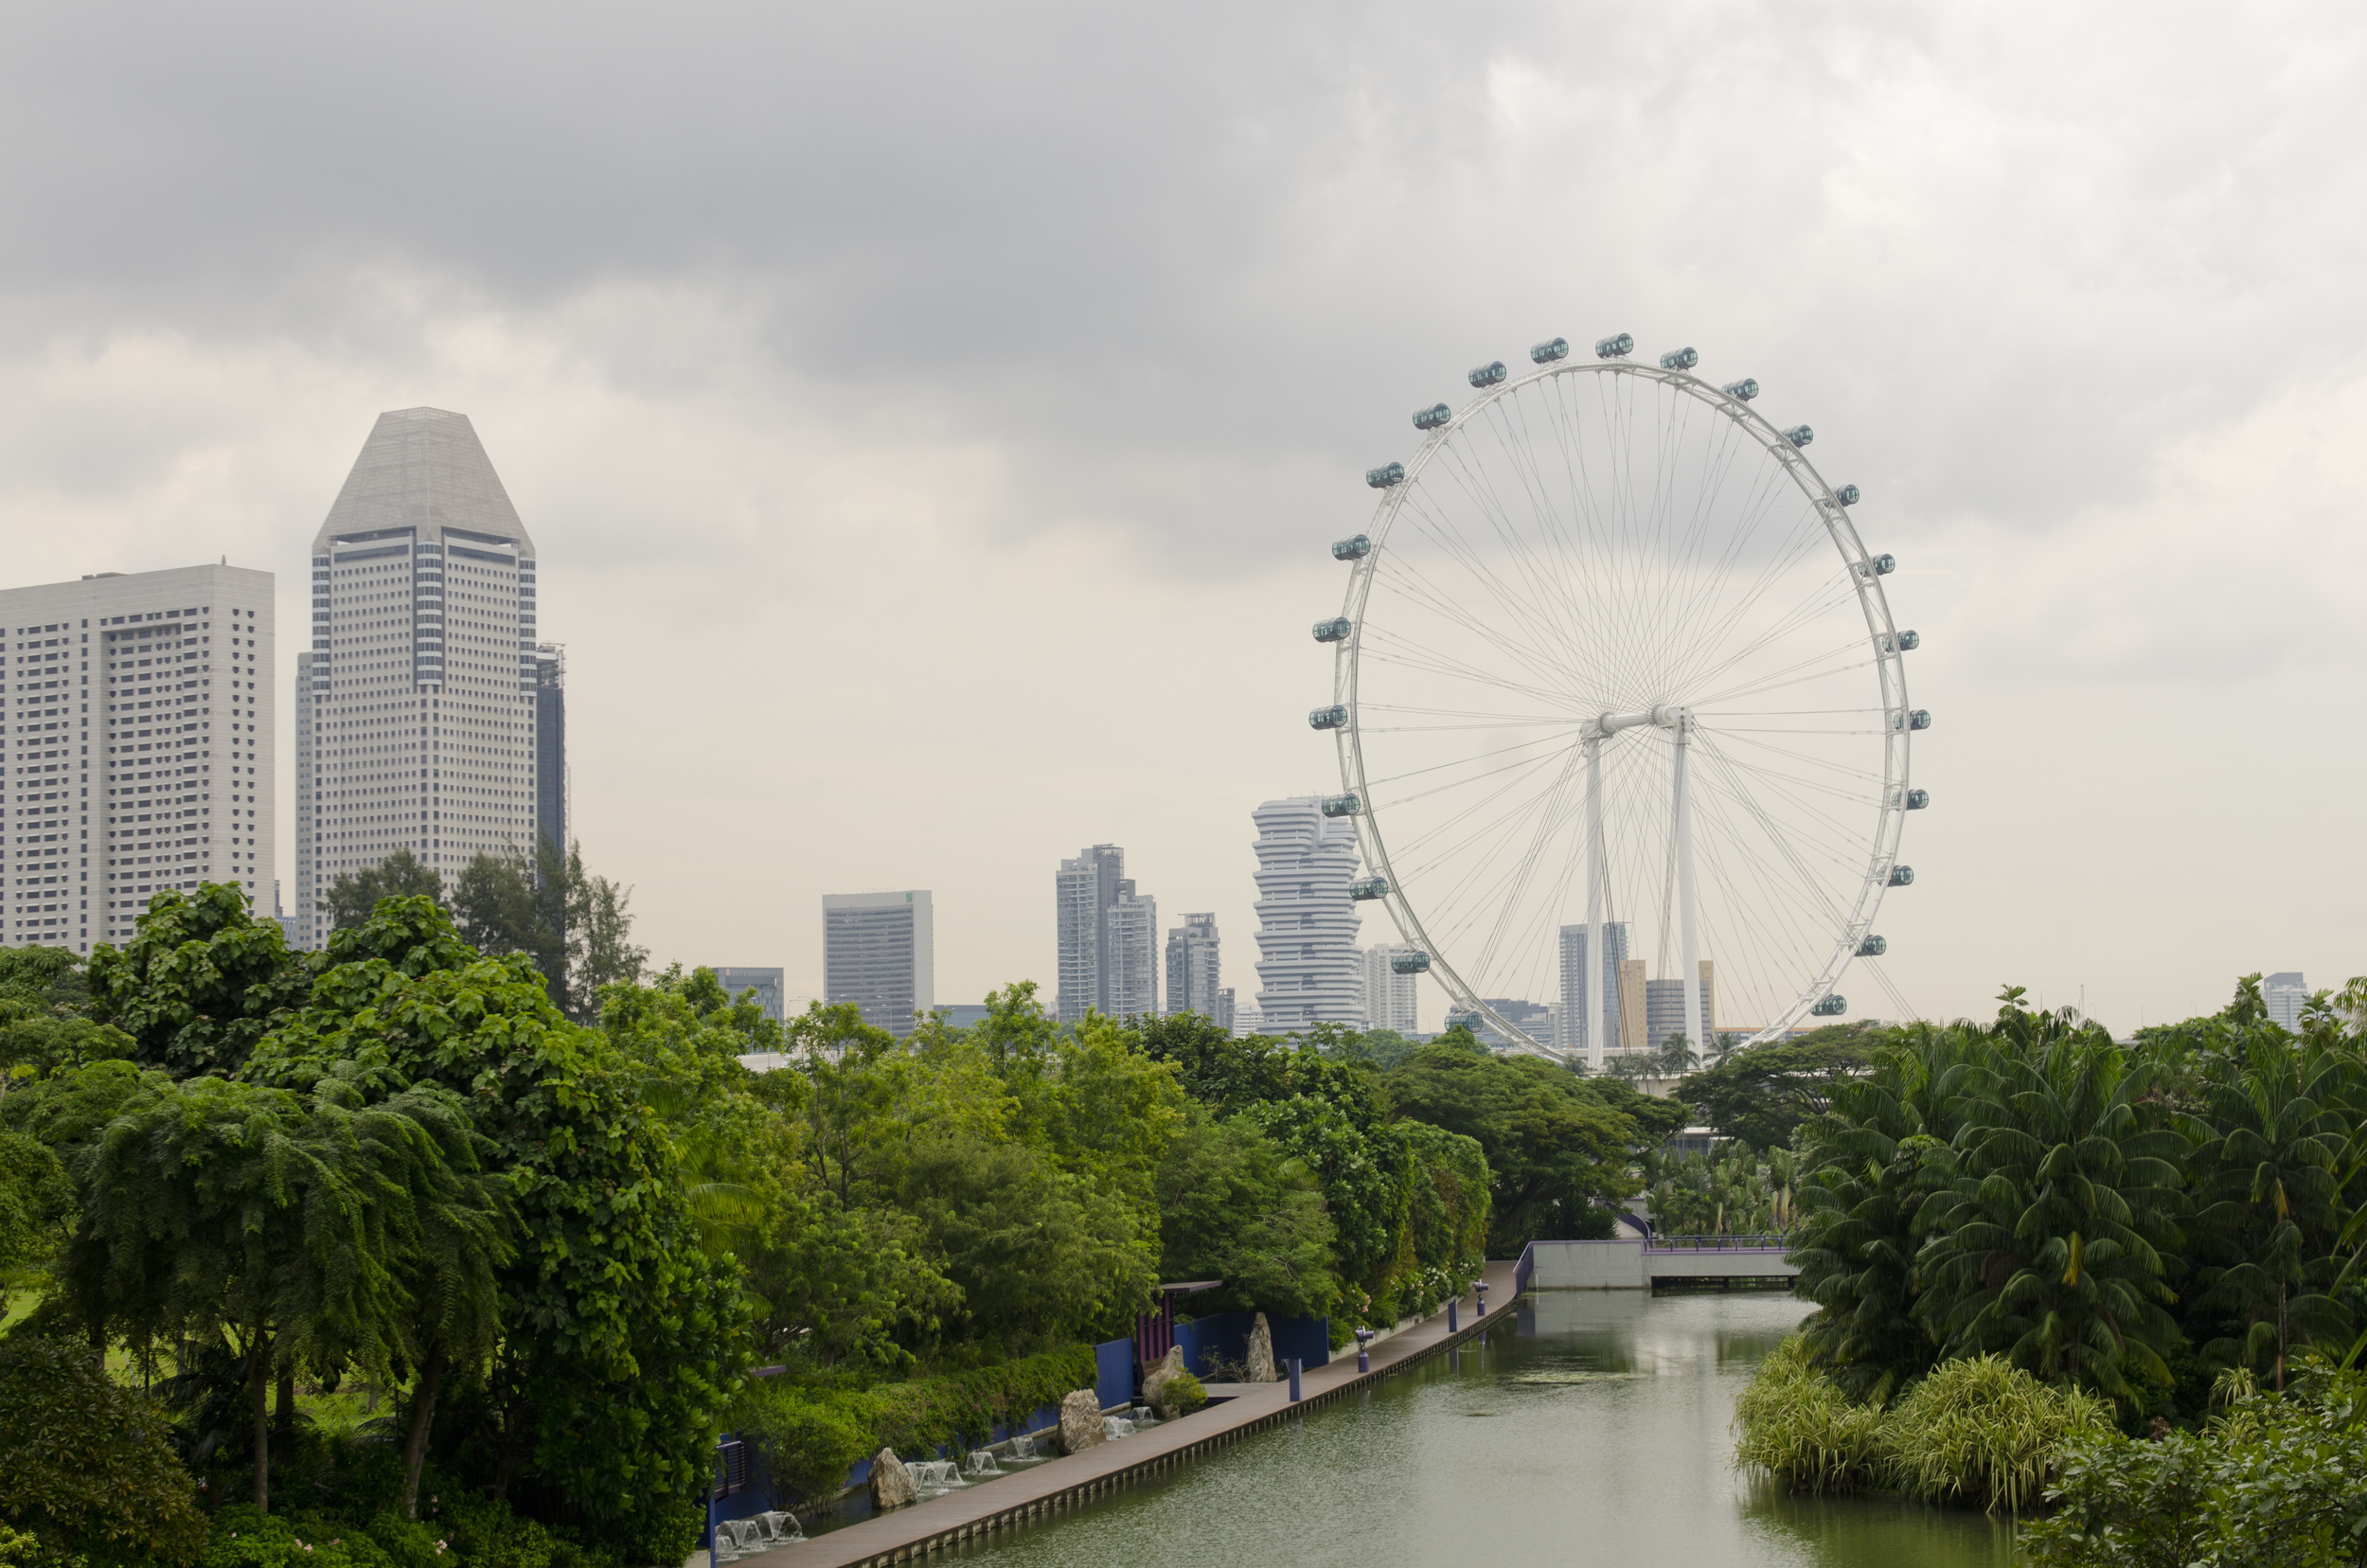 A glimpse of the Singapore Flyer from Gardens by the Bay